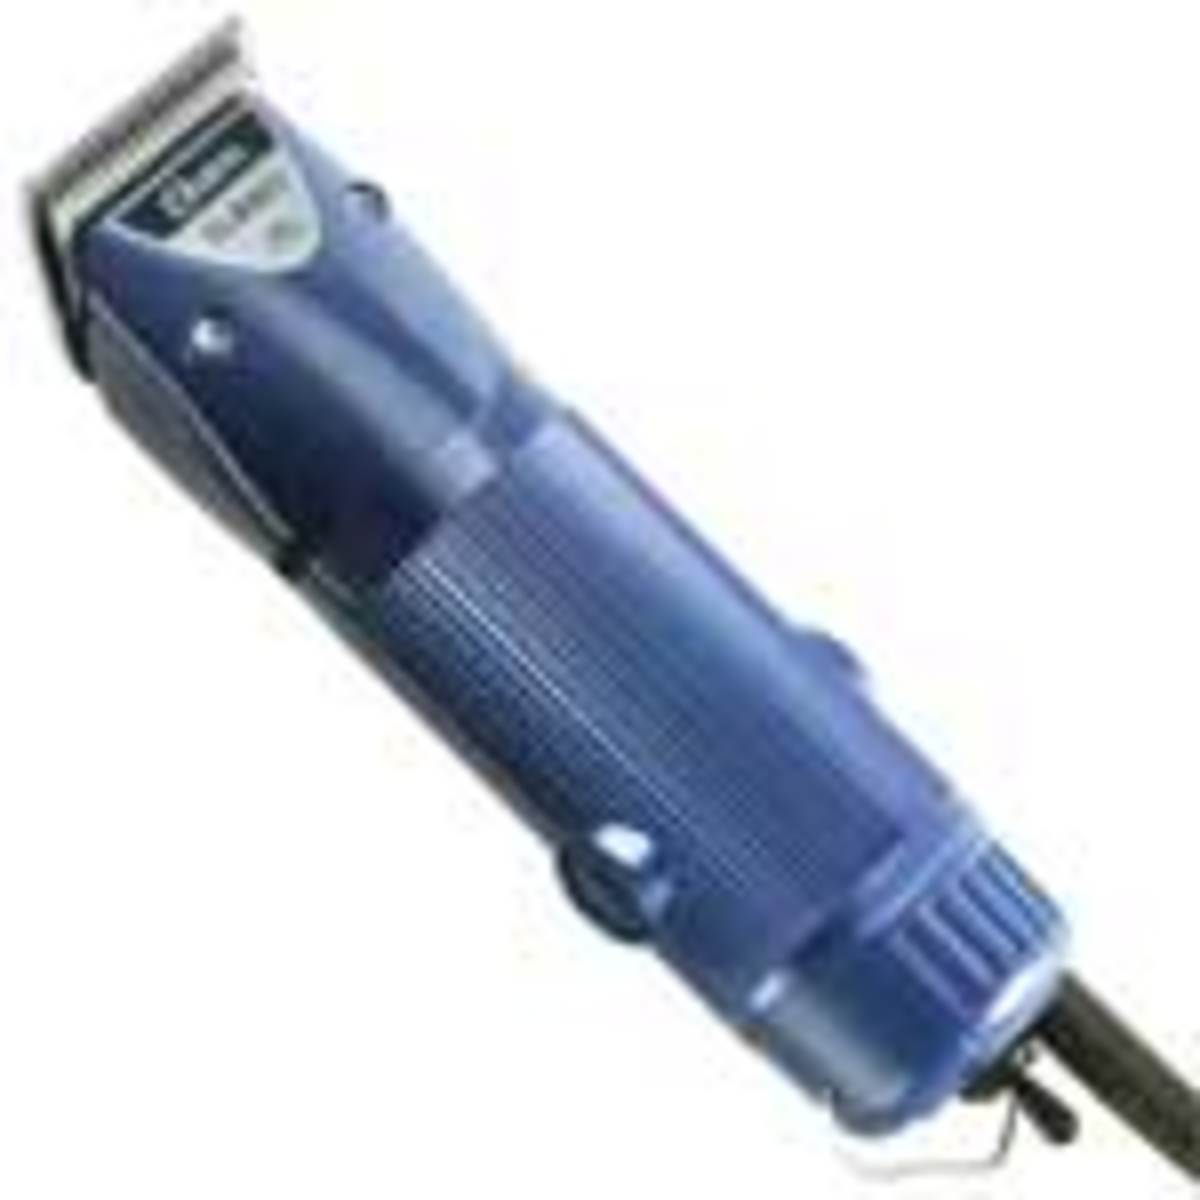 Oster clipper. Great buy for the money.